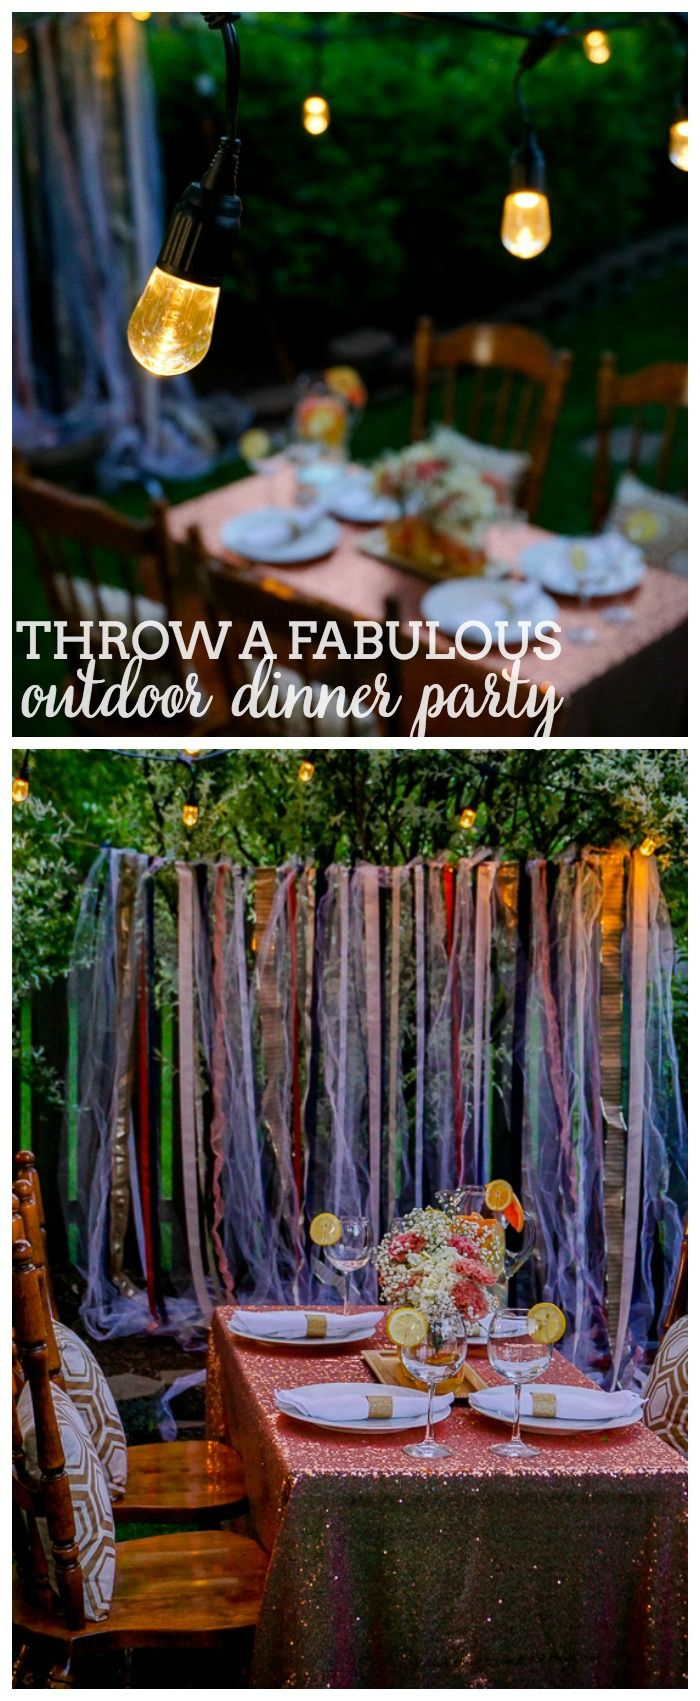 26 best images about parties decorations on pinterest for Outdoor dinner party decorating ideas